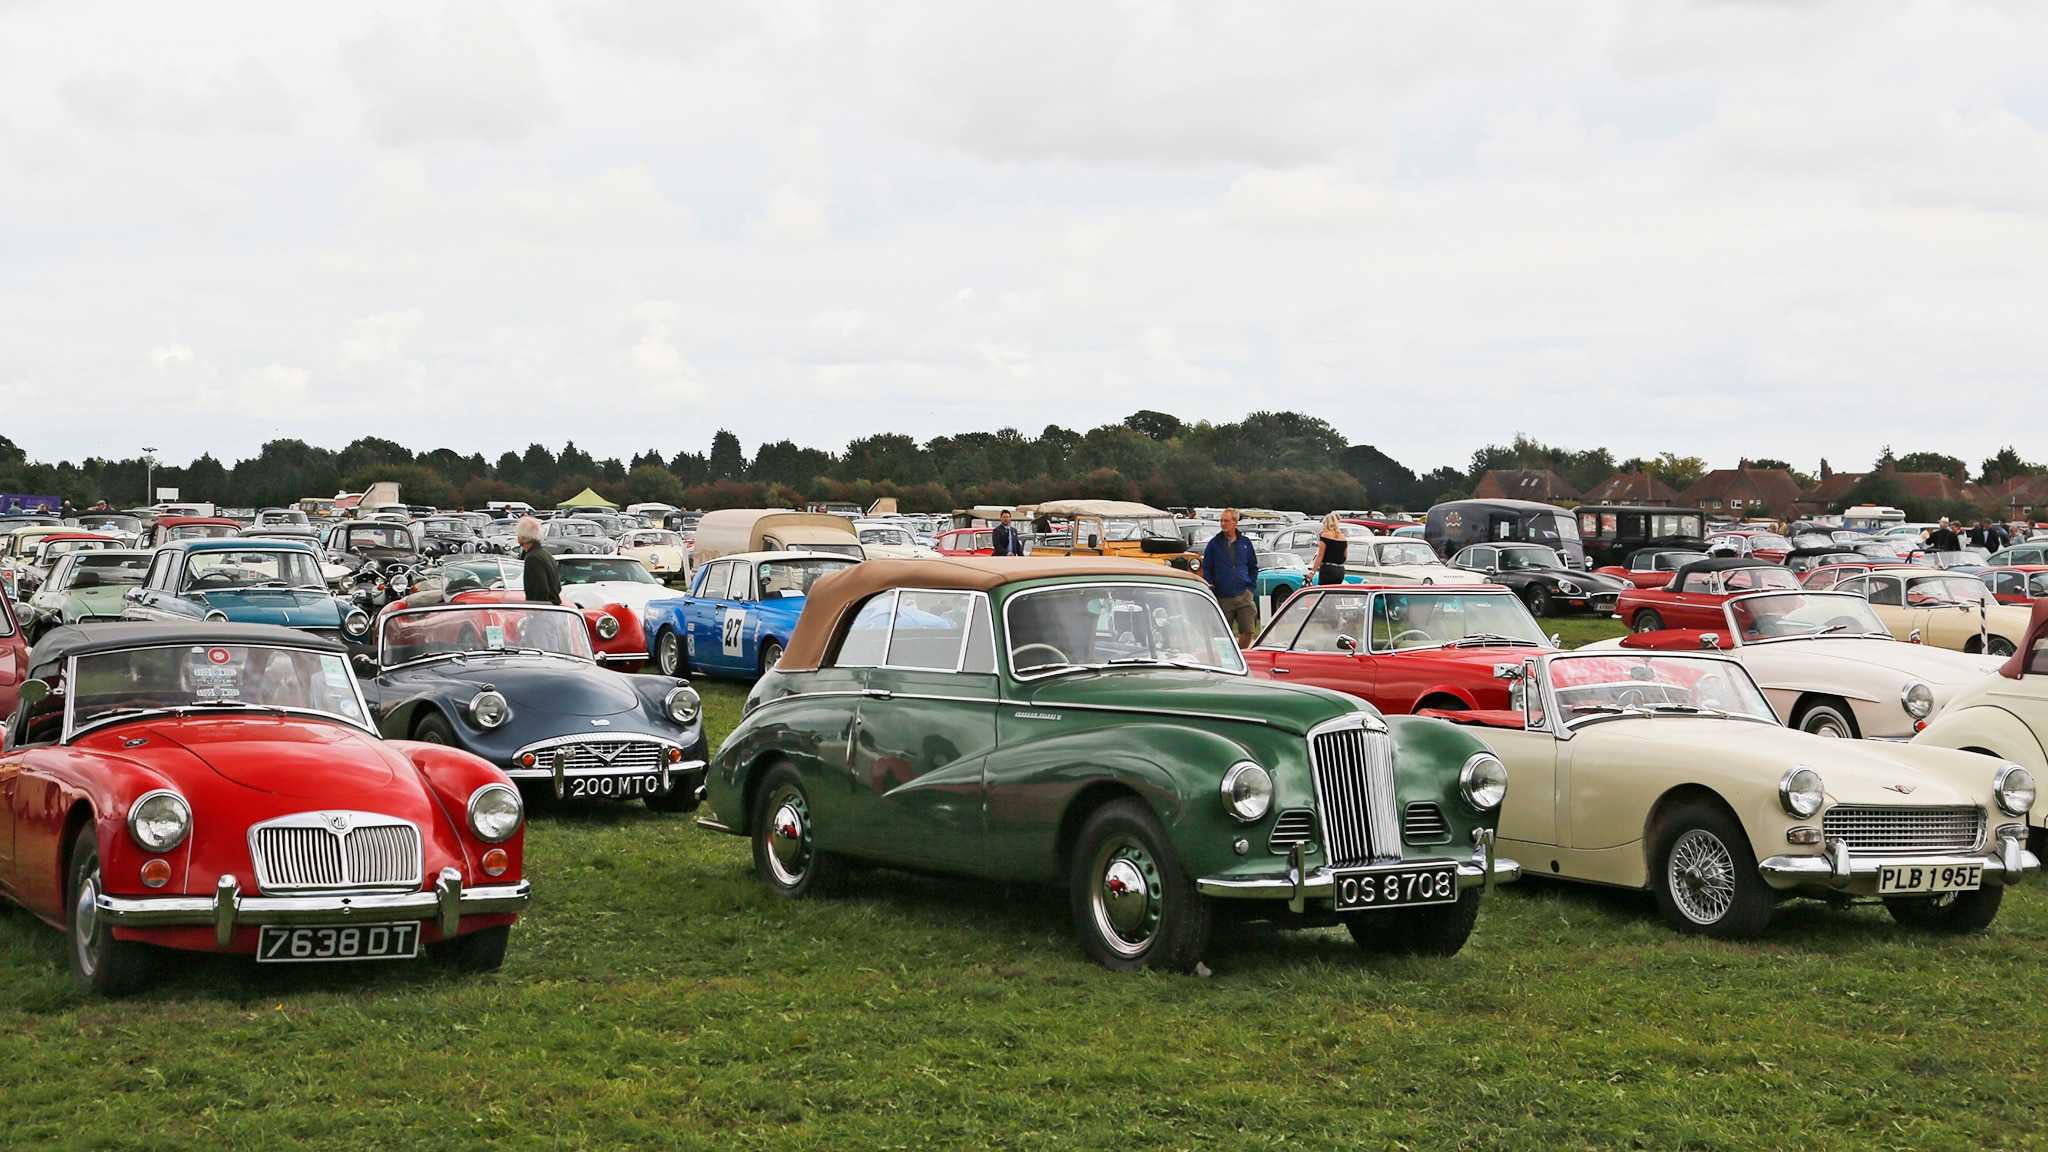 2018 Goodwood Revival Parking Lot Spread